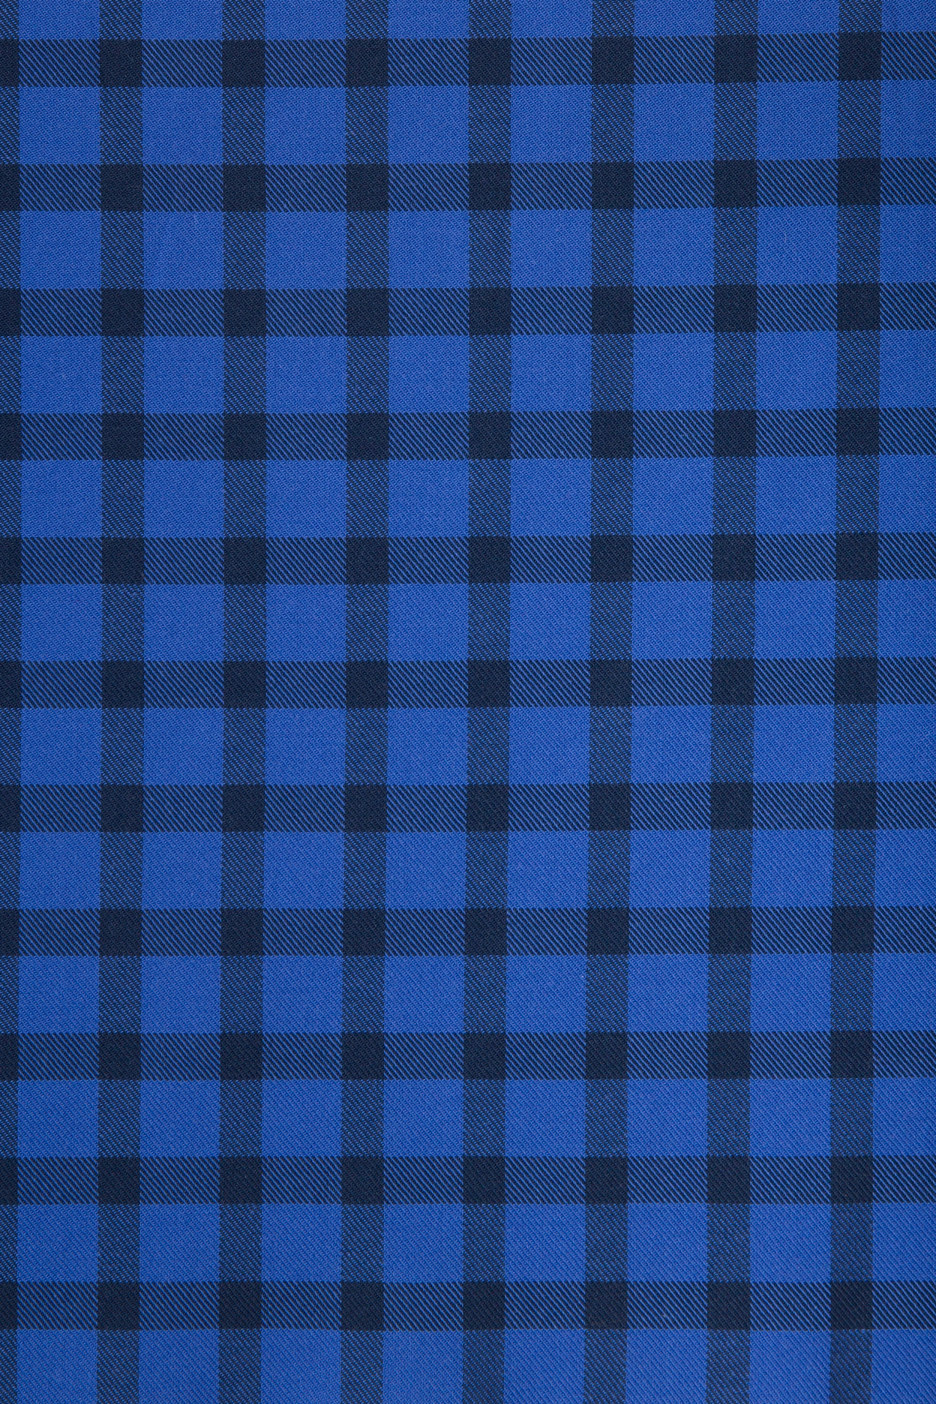 936x1404 - Blue Plaid 1